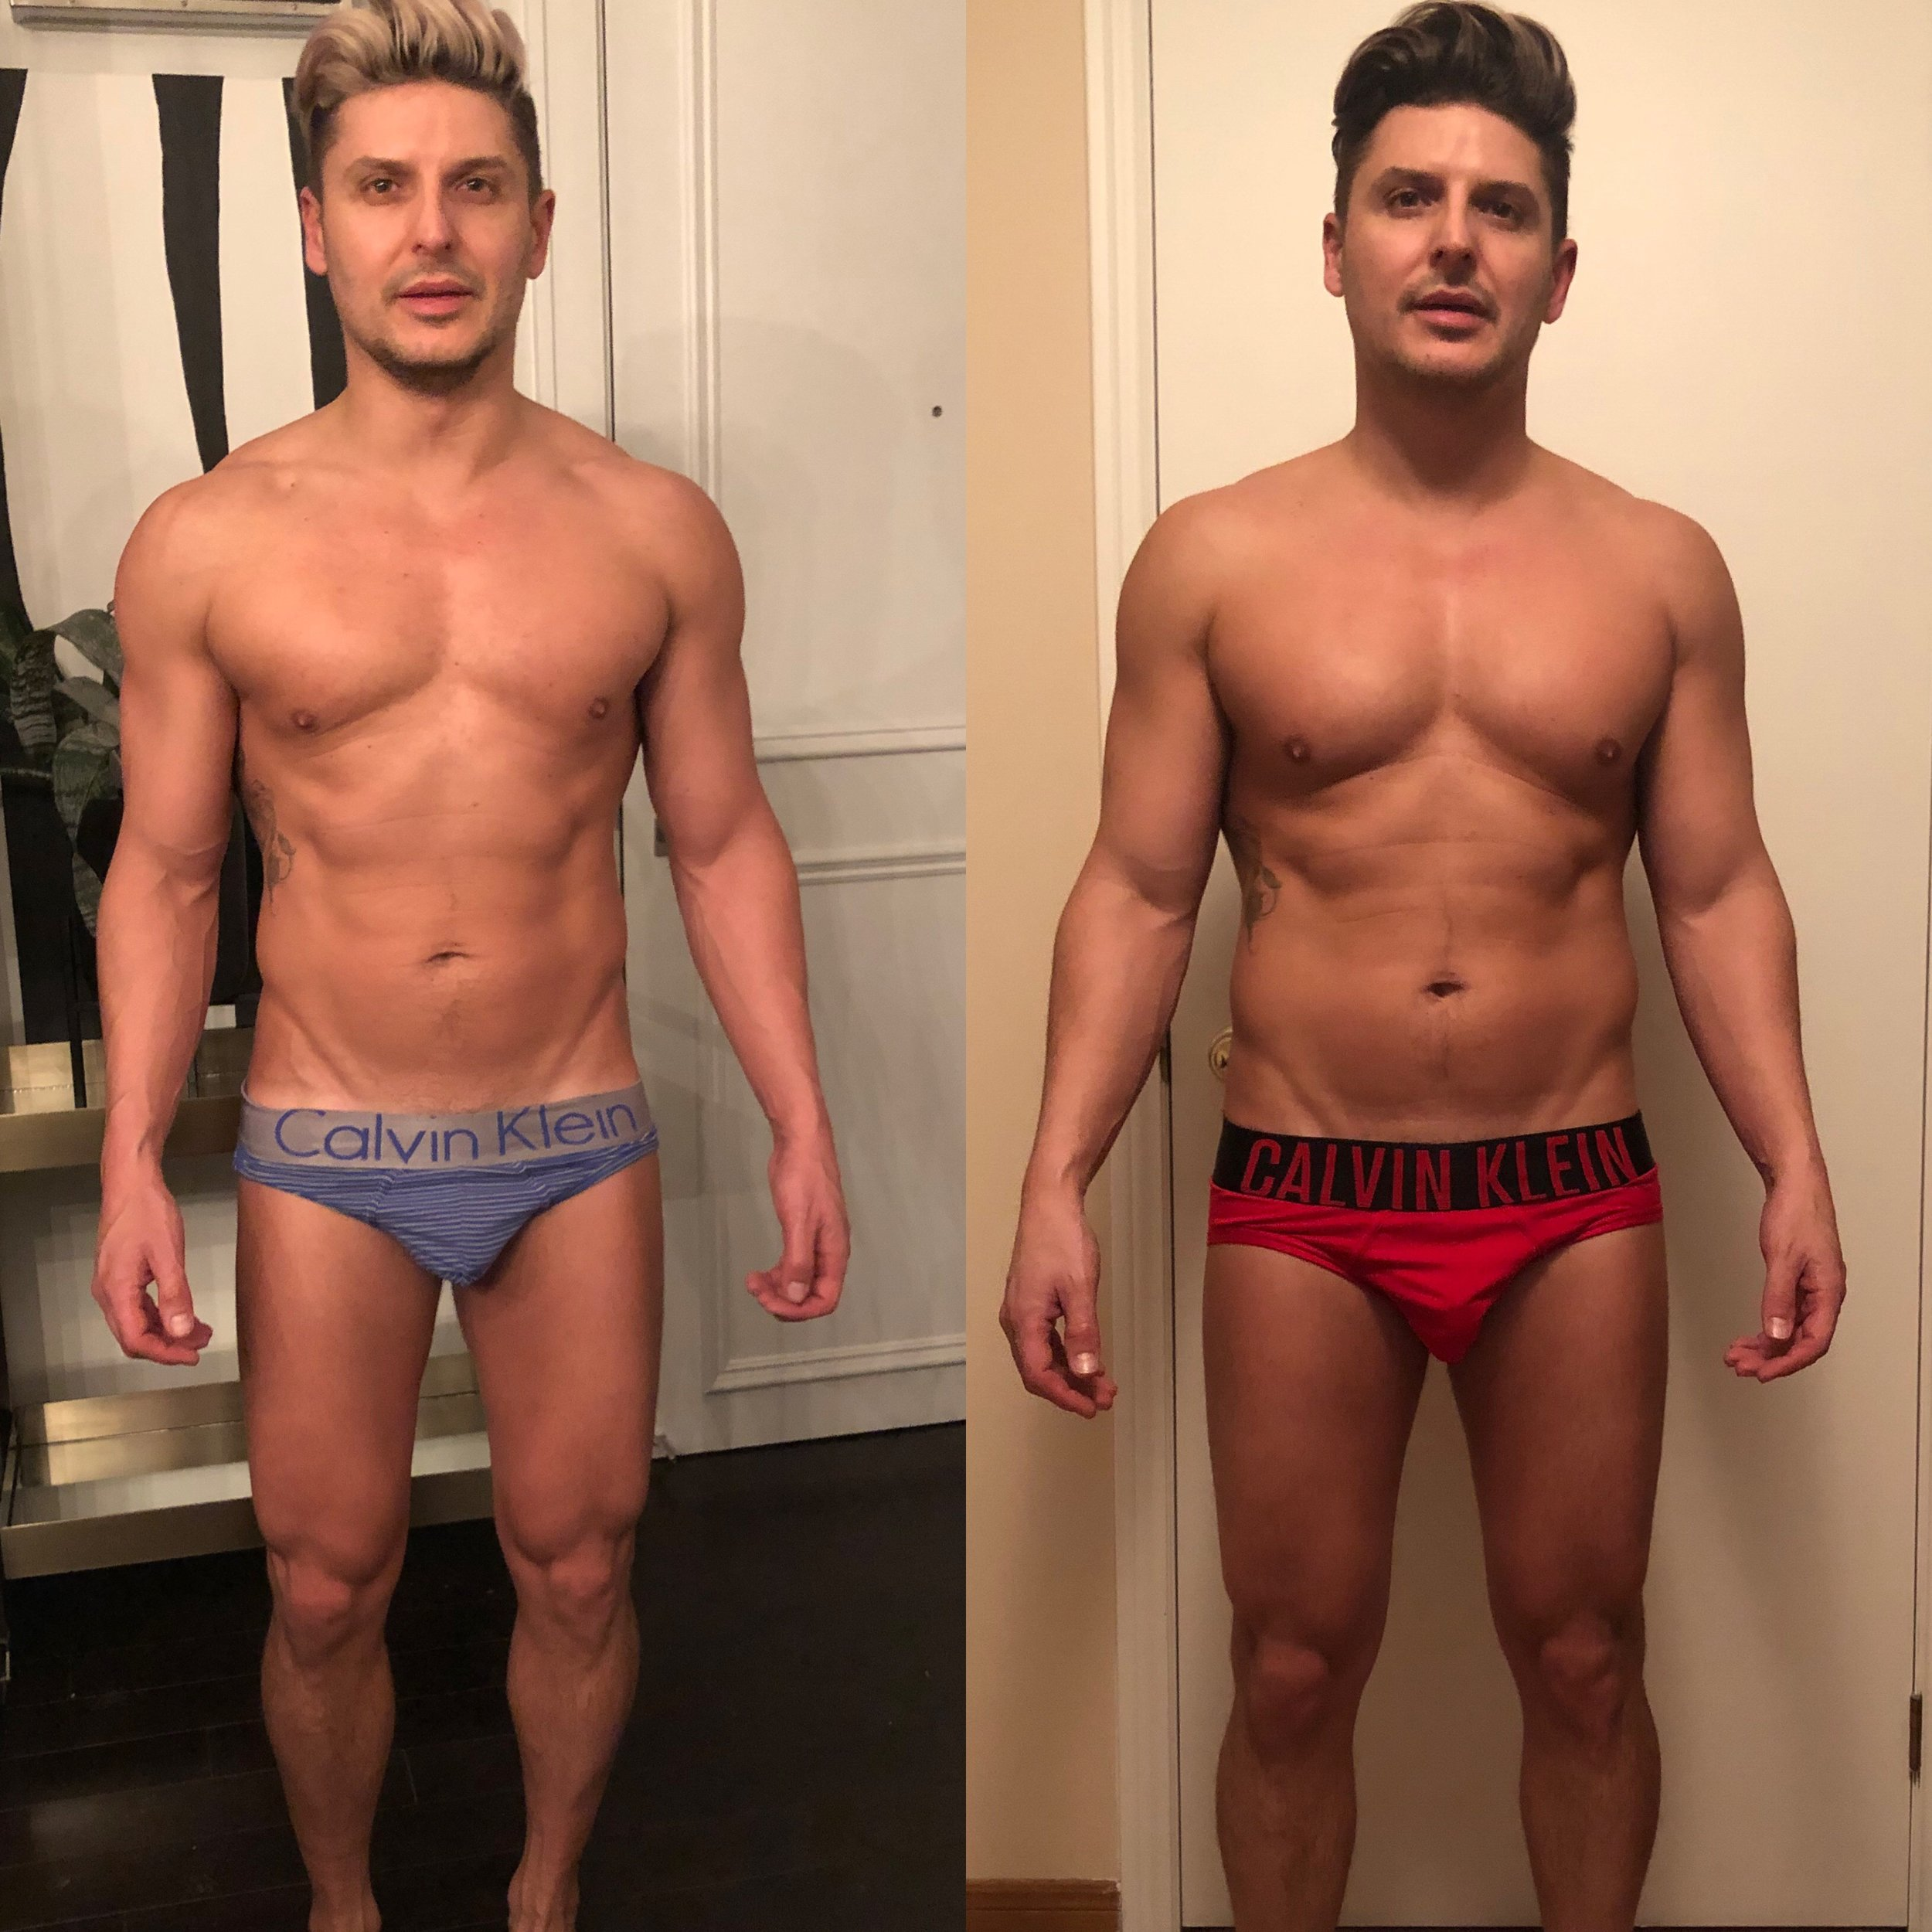 Johnny Wigs - 12 Weeks, 12lbs Down, 10% BF Down